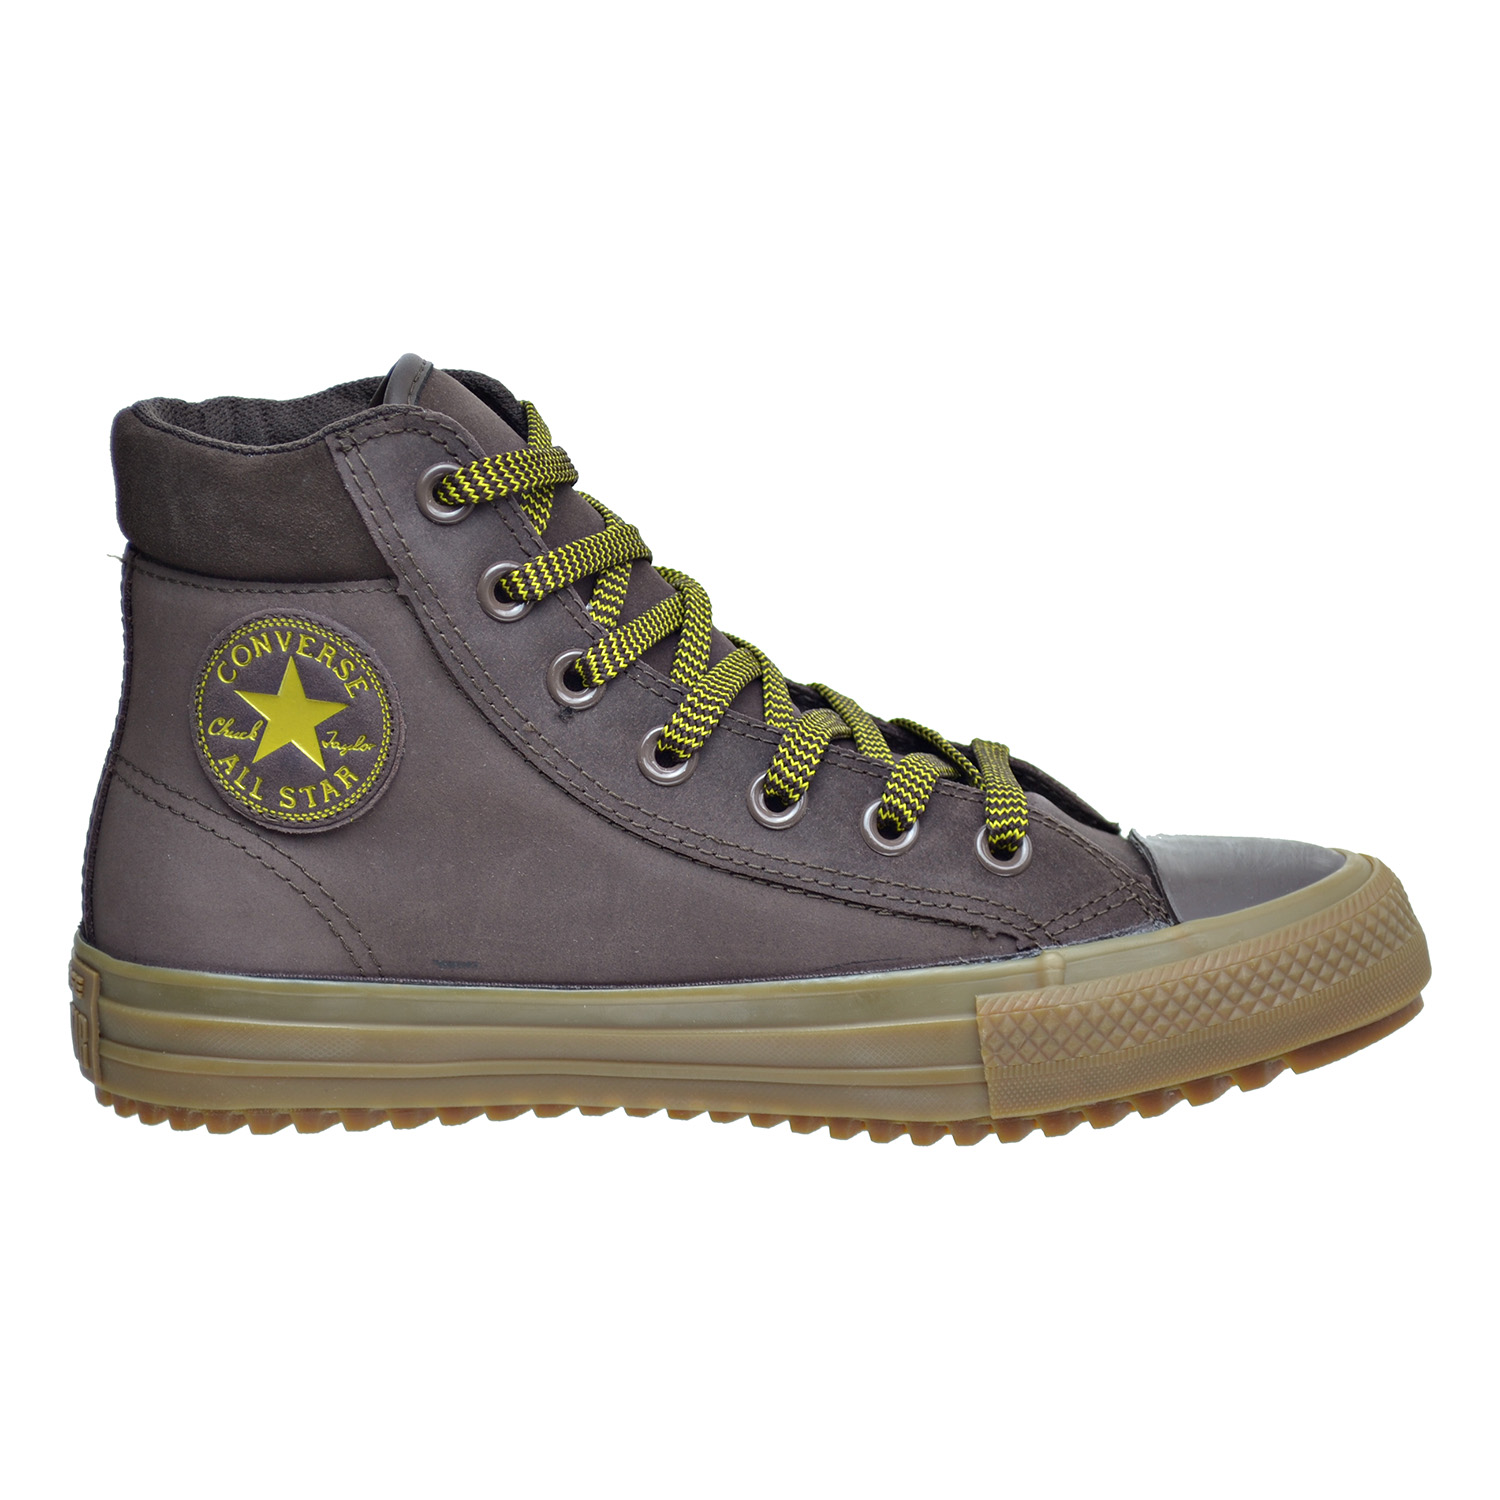 3f83e6bf216cae Converse Chuck Taylor All Star PC High Top Men s Boots Burnt  Umber Lemon Gum 153674c